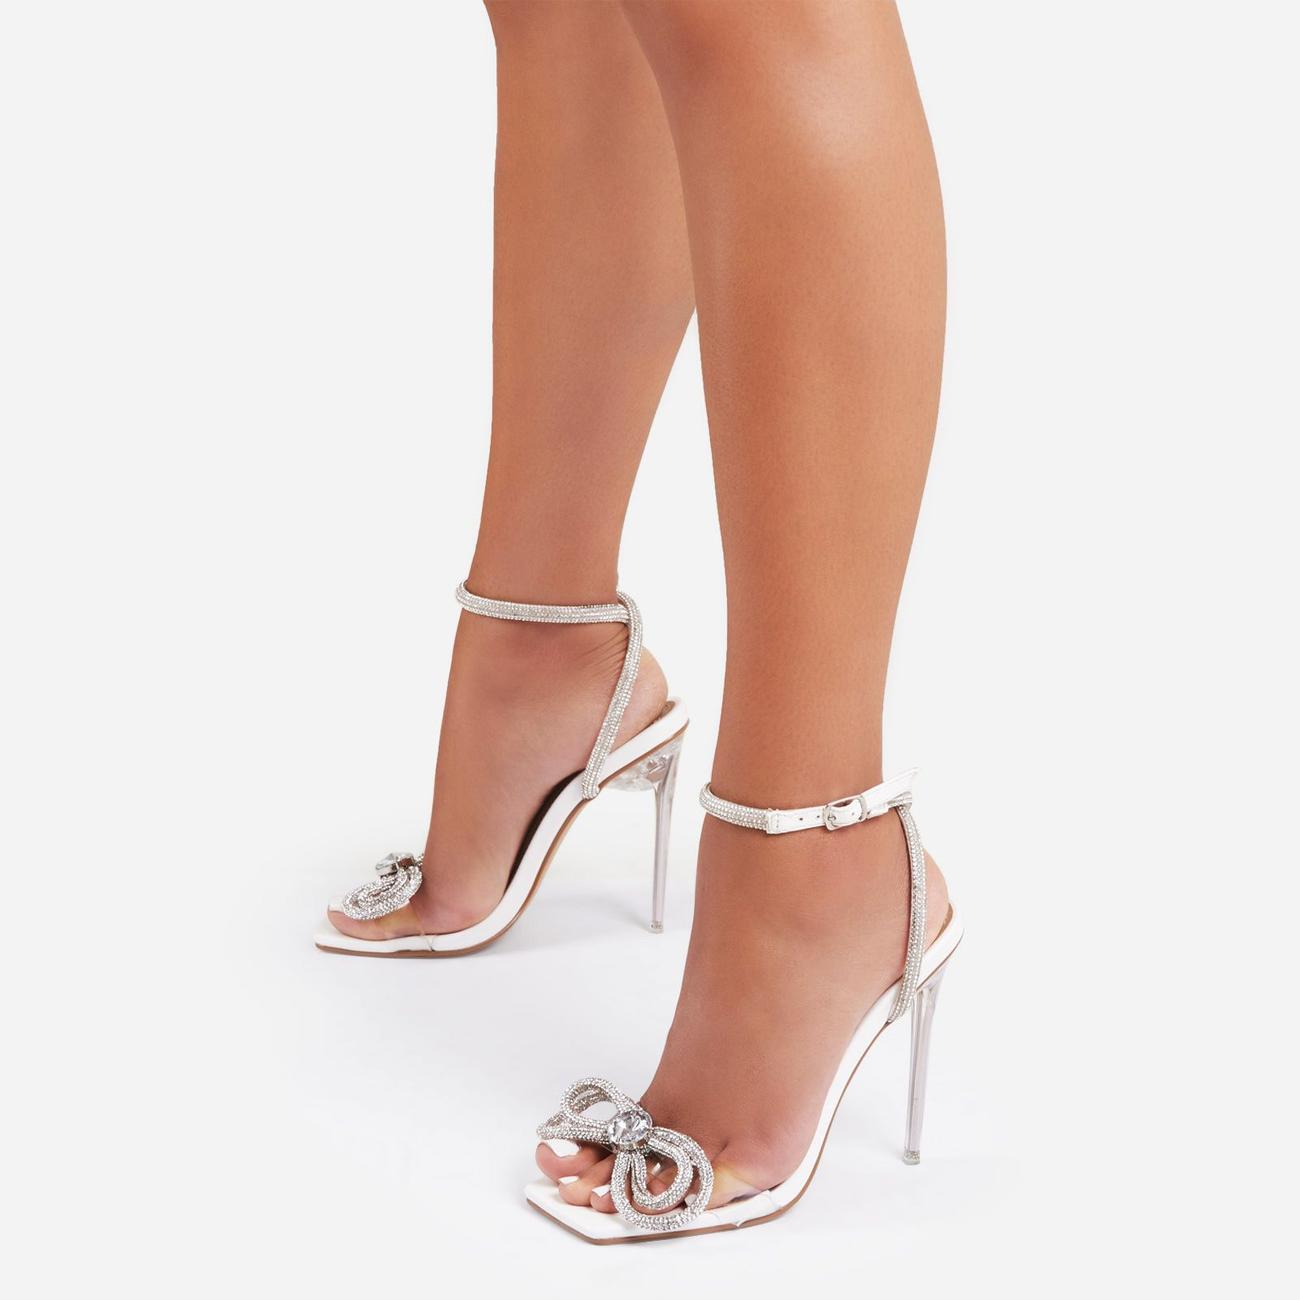 Sugar-Coated Diamante Bow Detail Square Toe Clear Perspex Heel In White Faux Leather Image 1